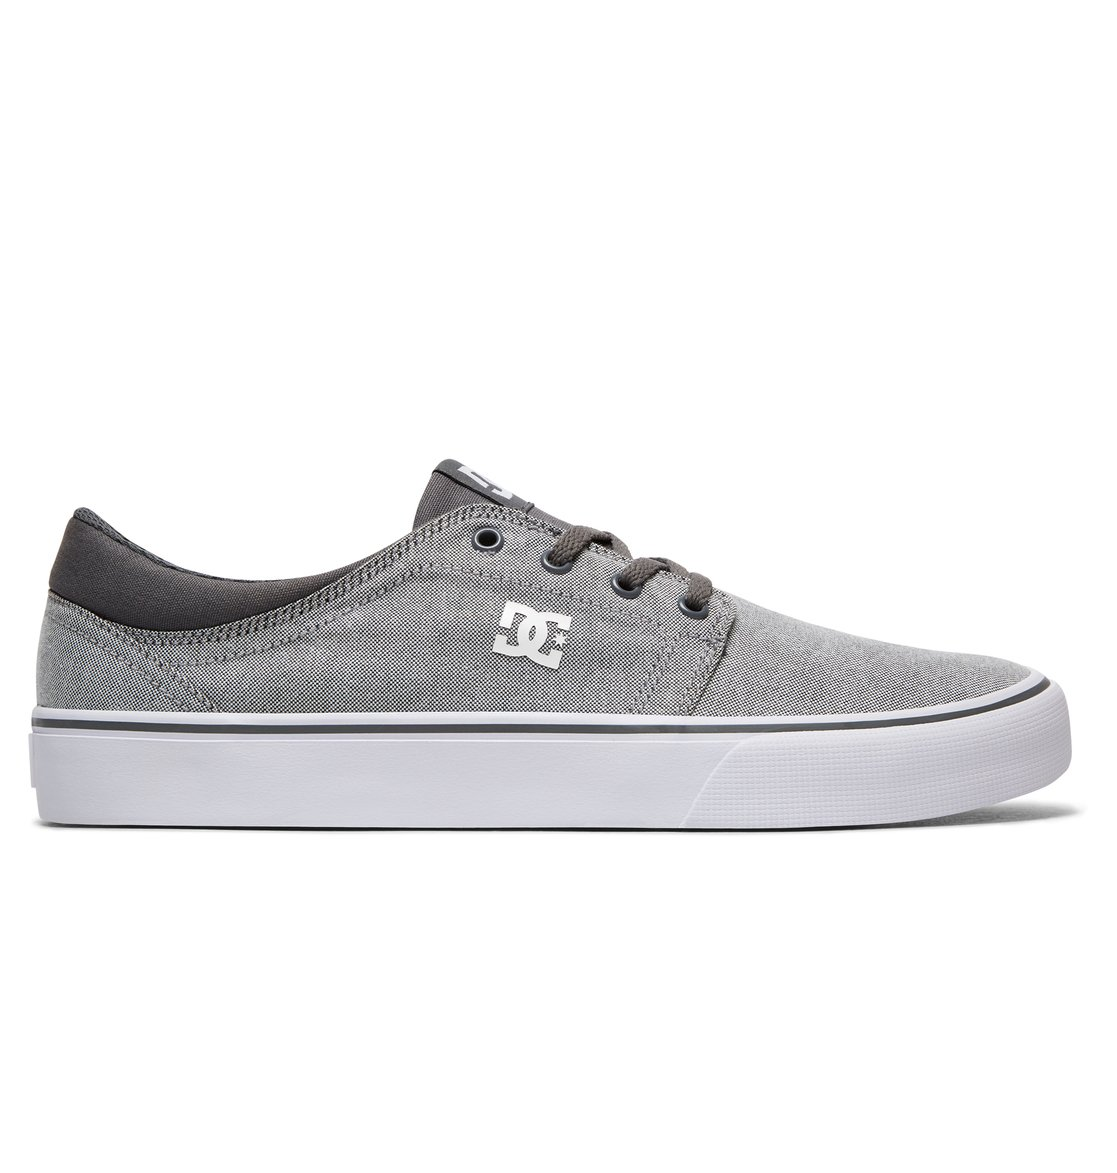 Chaussures Trase Tx Se Grey Black - DC Shoes rzvz4wJDh